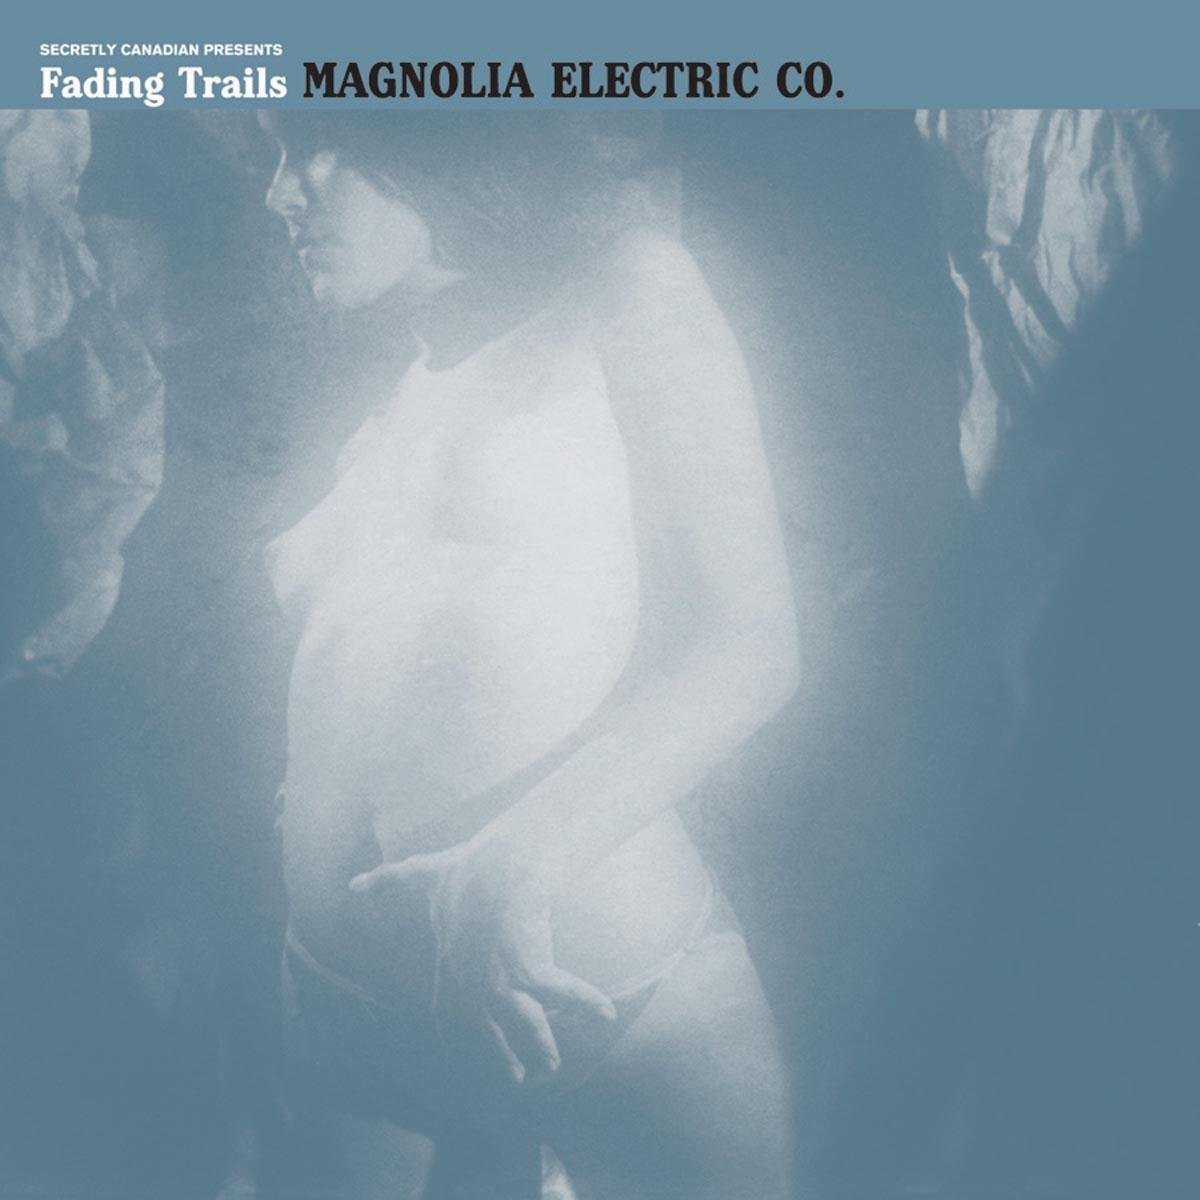 Vinilo : Magnolia Electric Co. - Fading Trails (LP Vinyl)